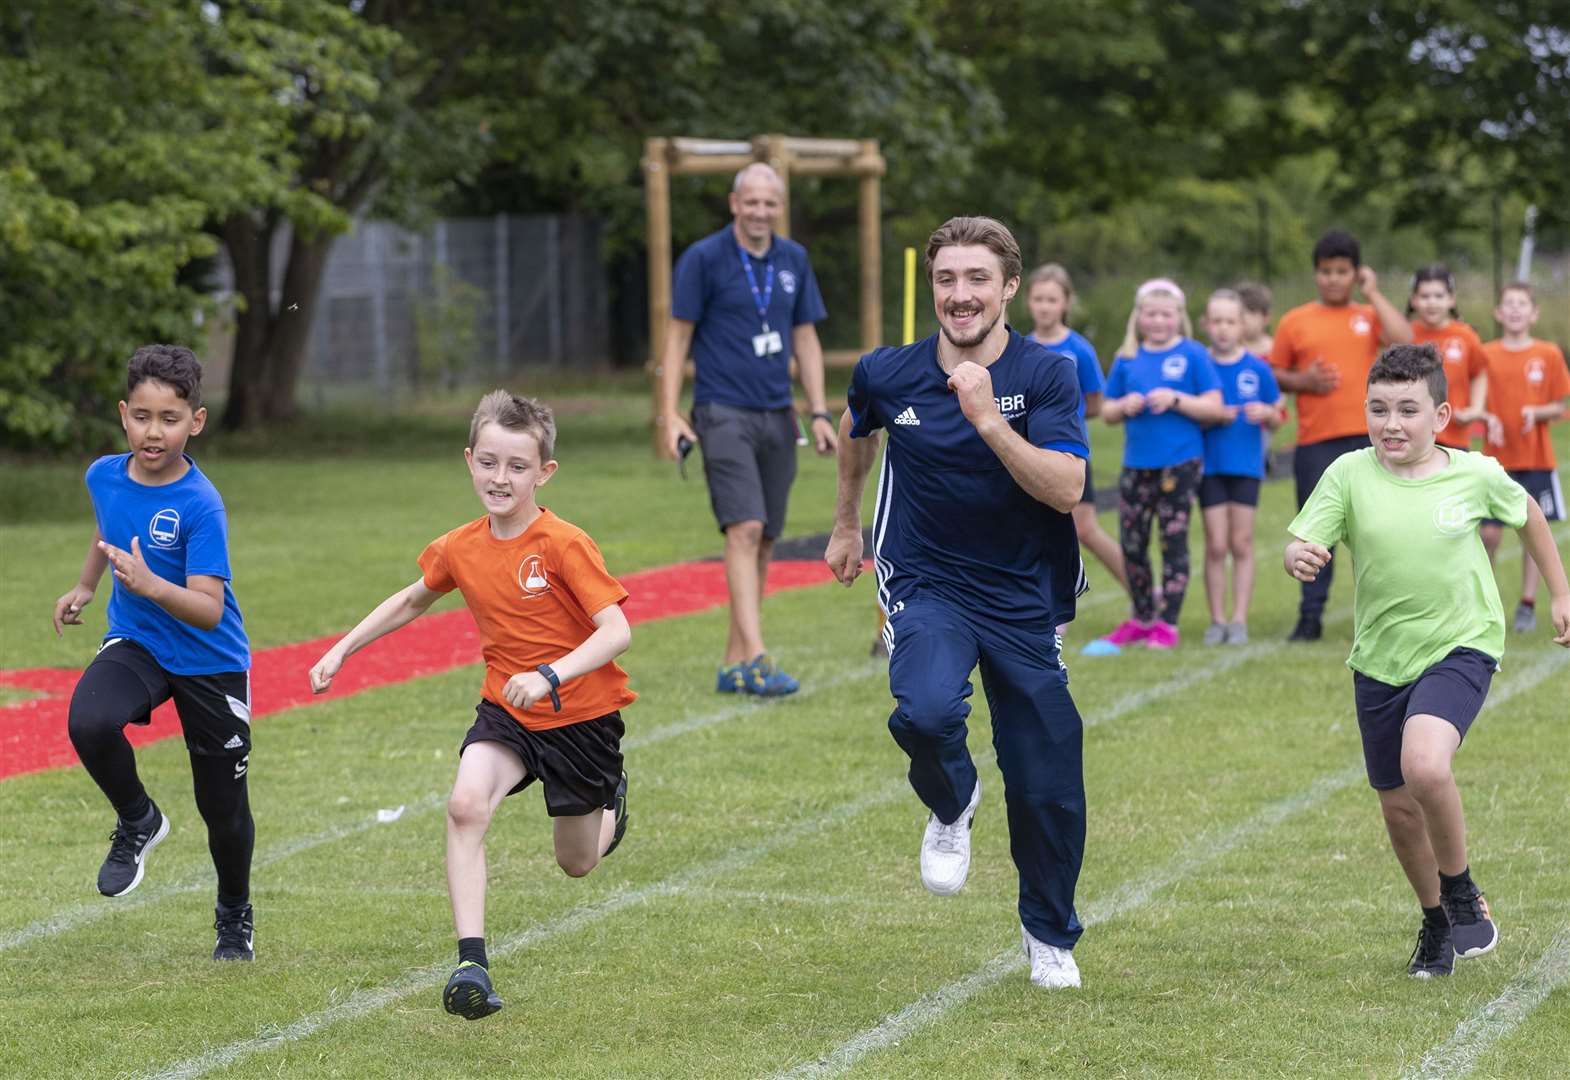 Olympic bronze medallist is special guest at Cottenham Primary School sports day